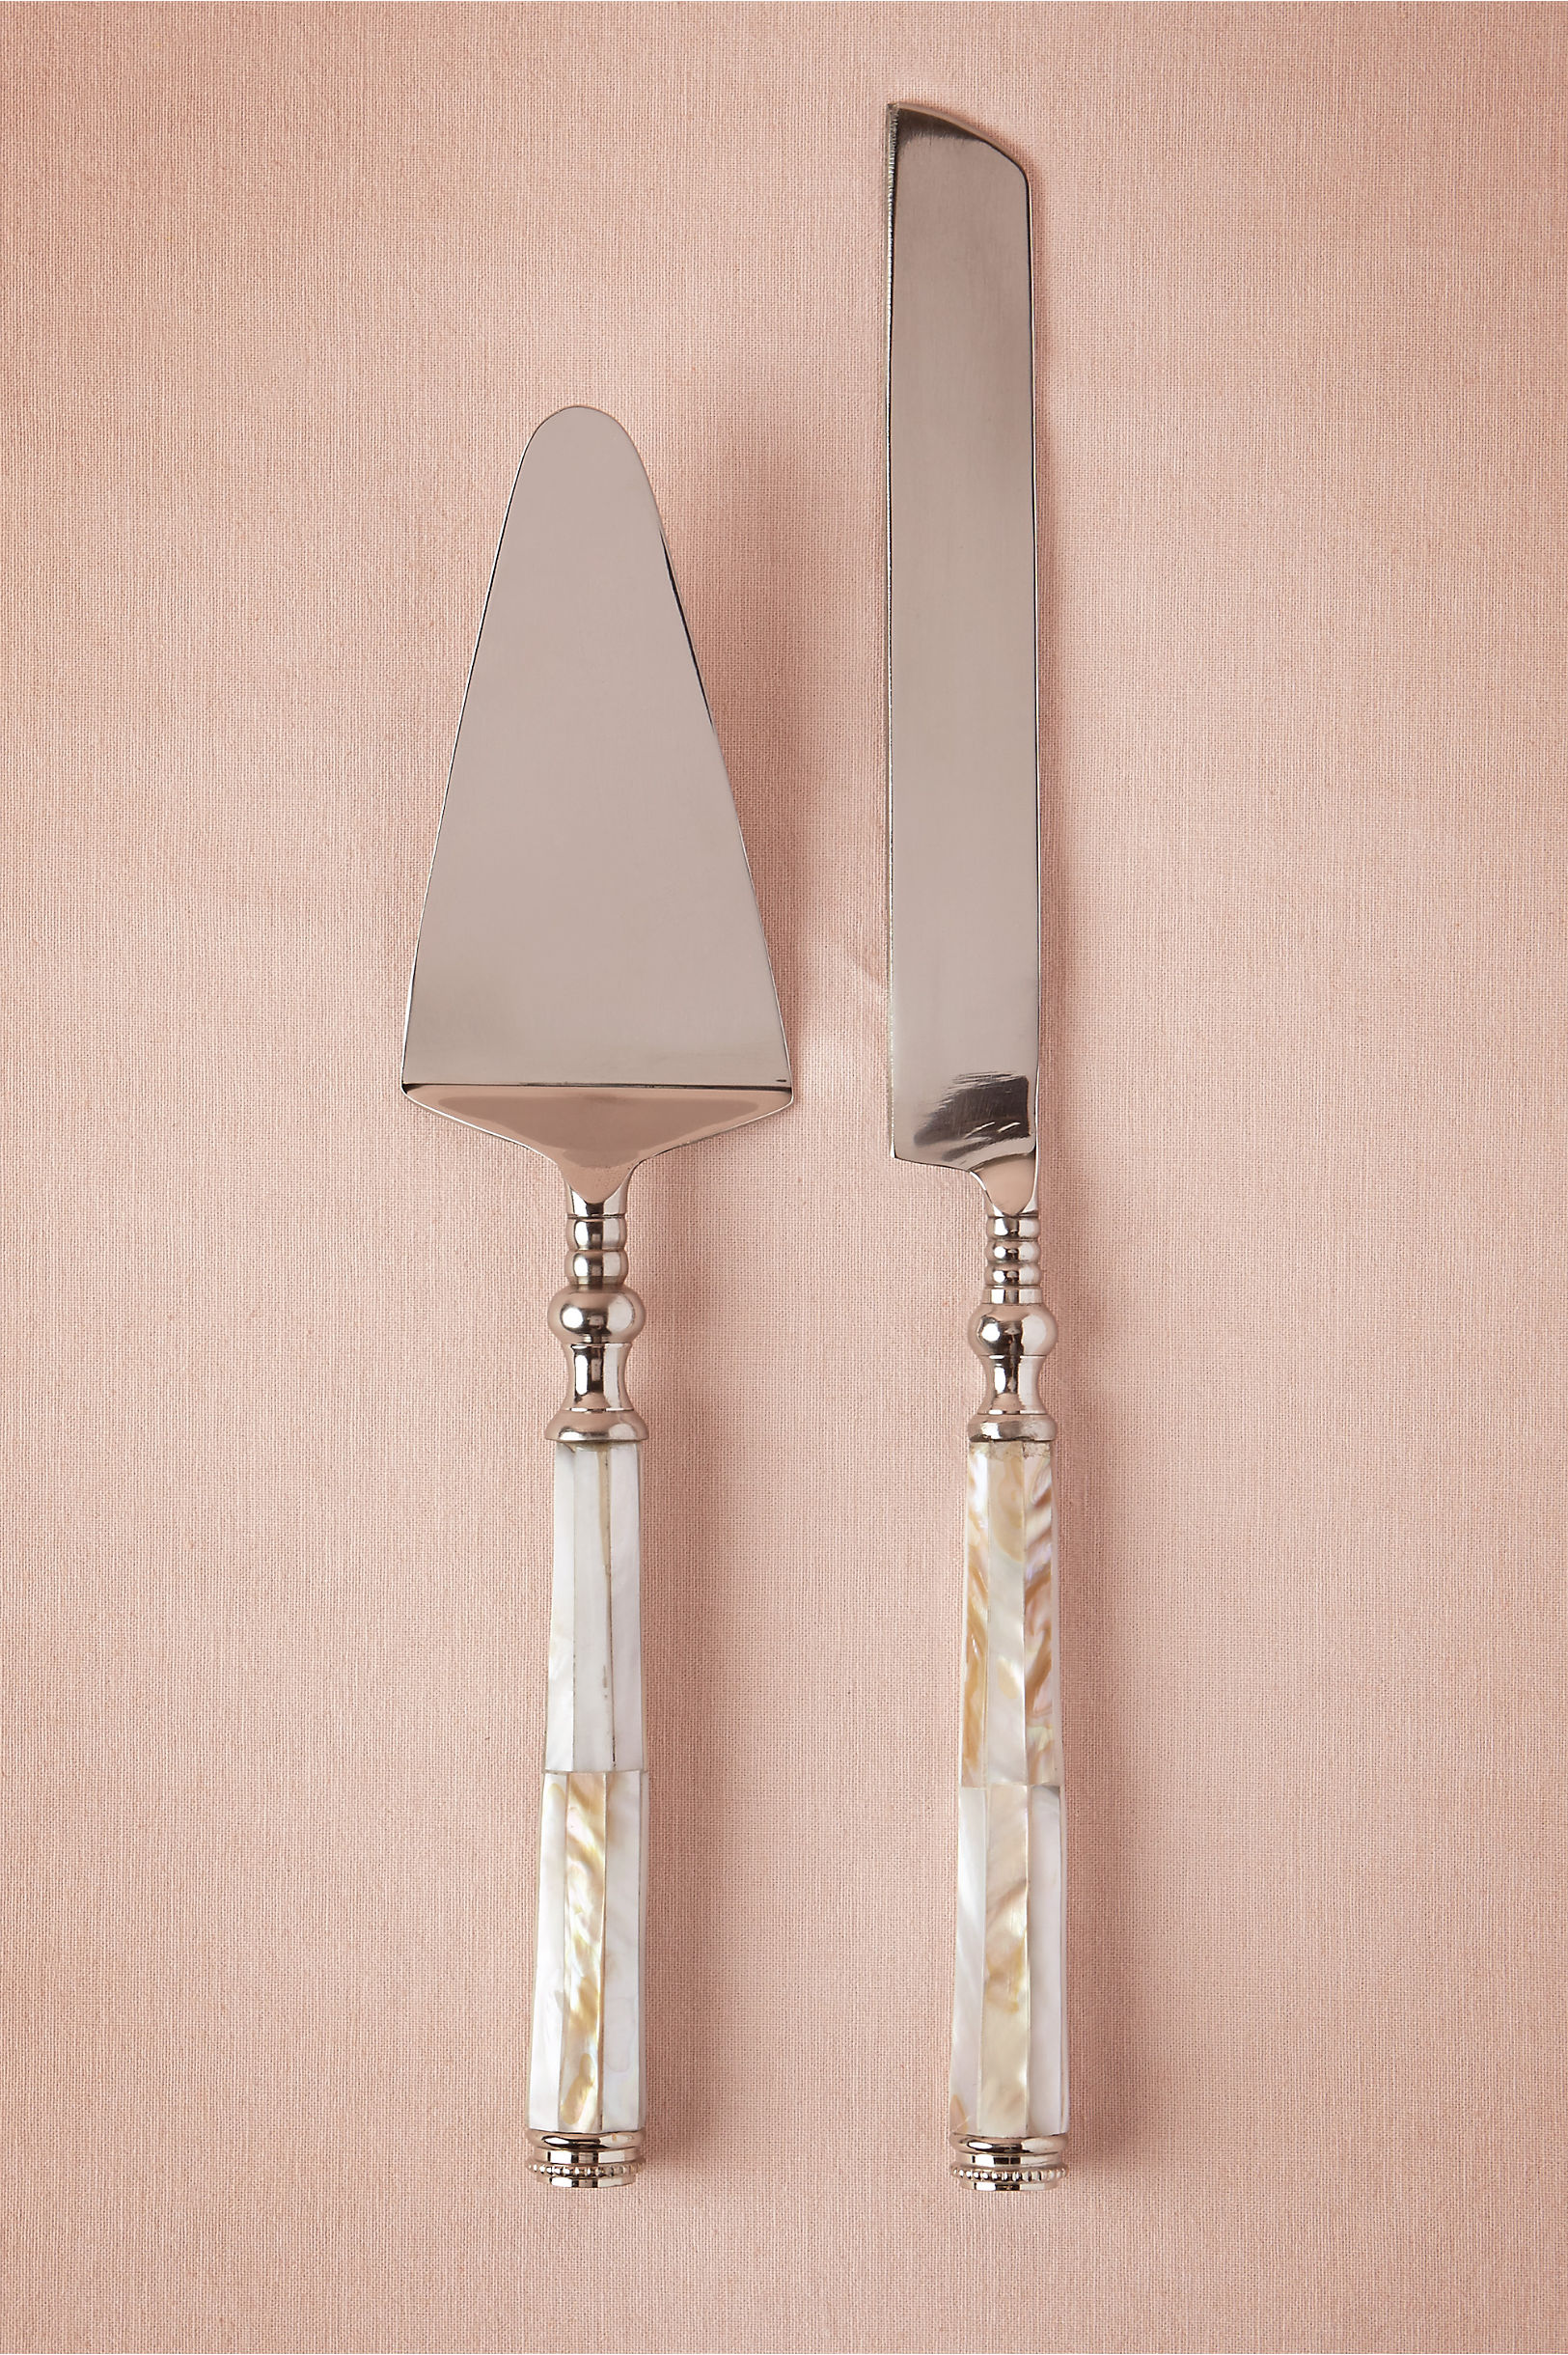 Pearled Serving Set in Sale | BHLDN